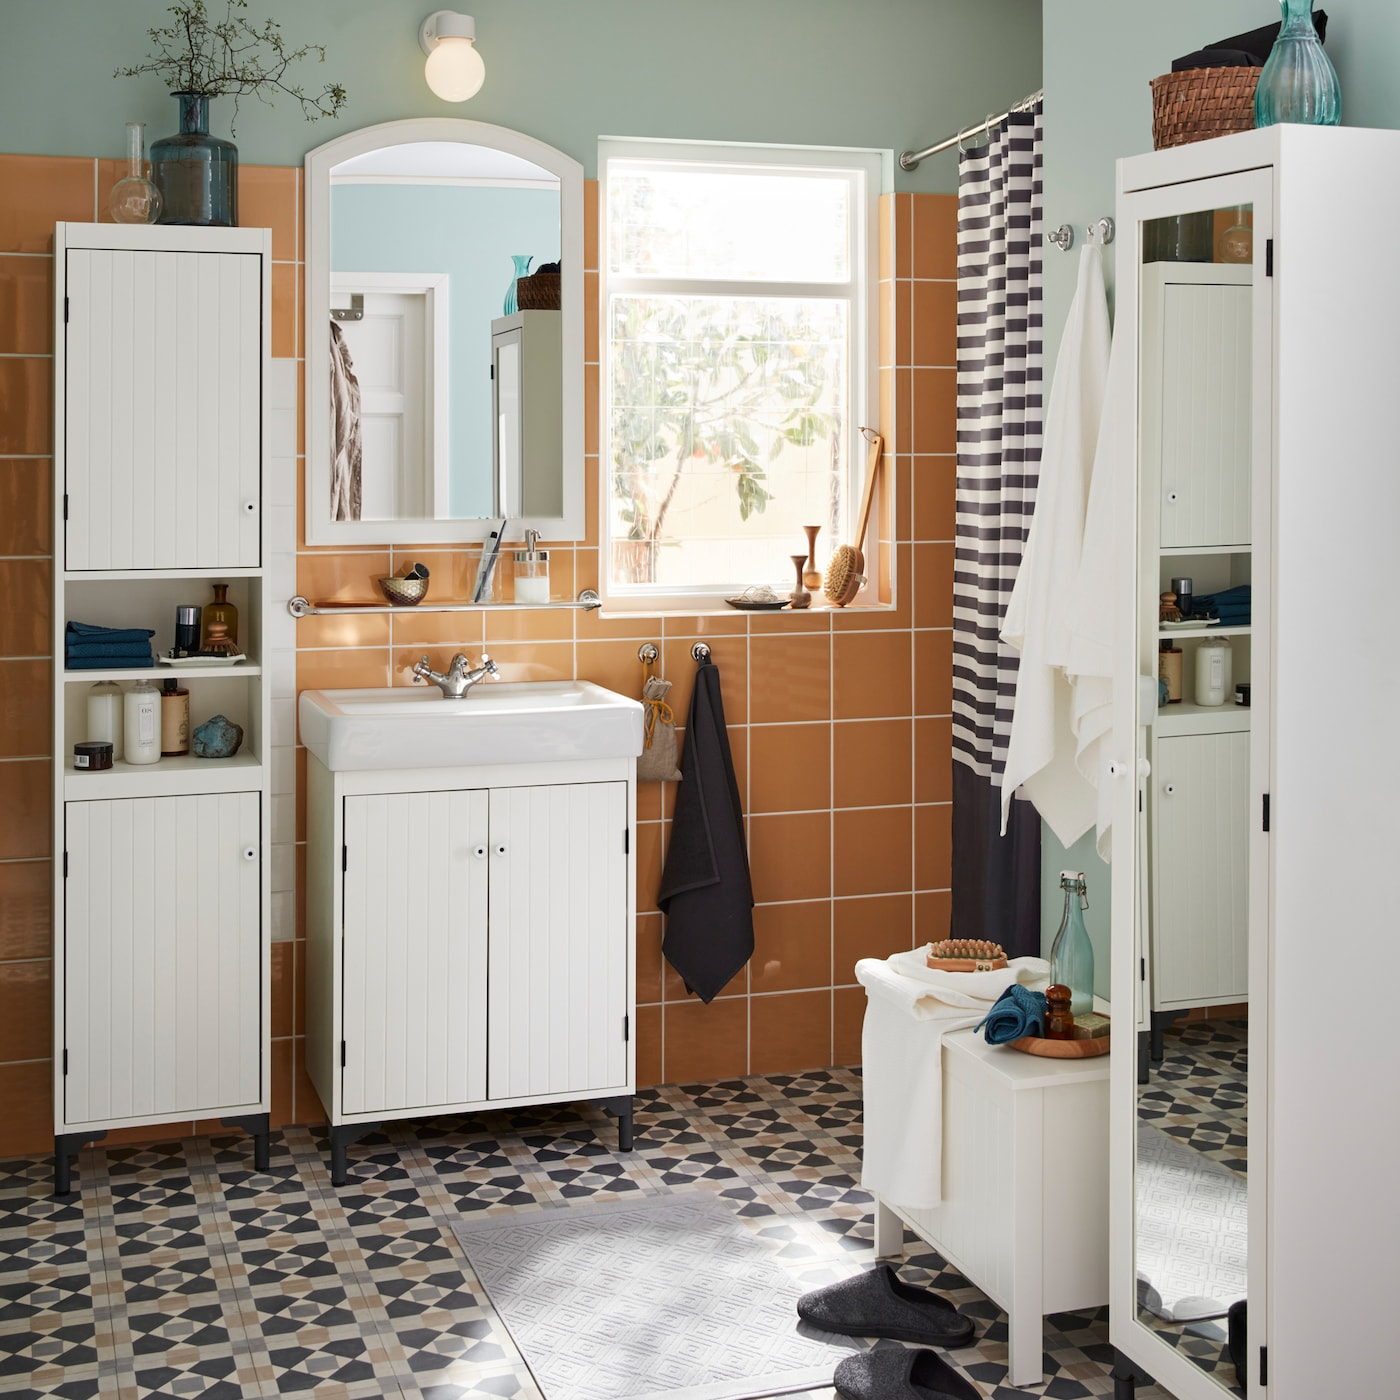 Maximise Your Bathroom Storage With Add-Ons UAE - IKEA